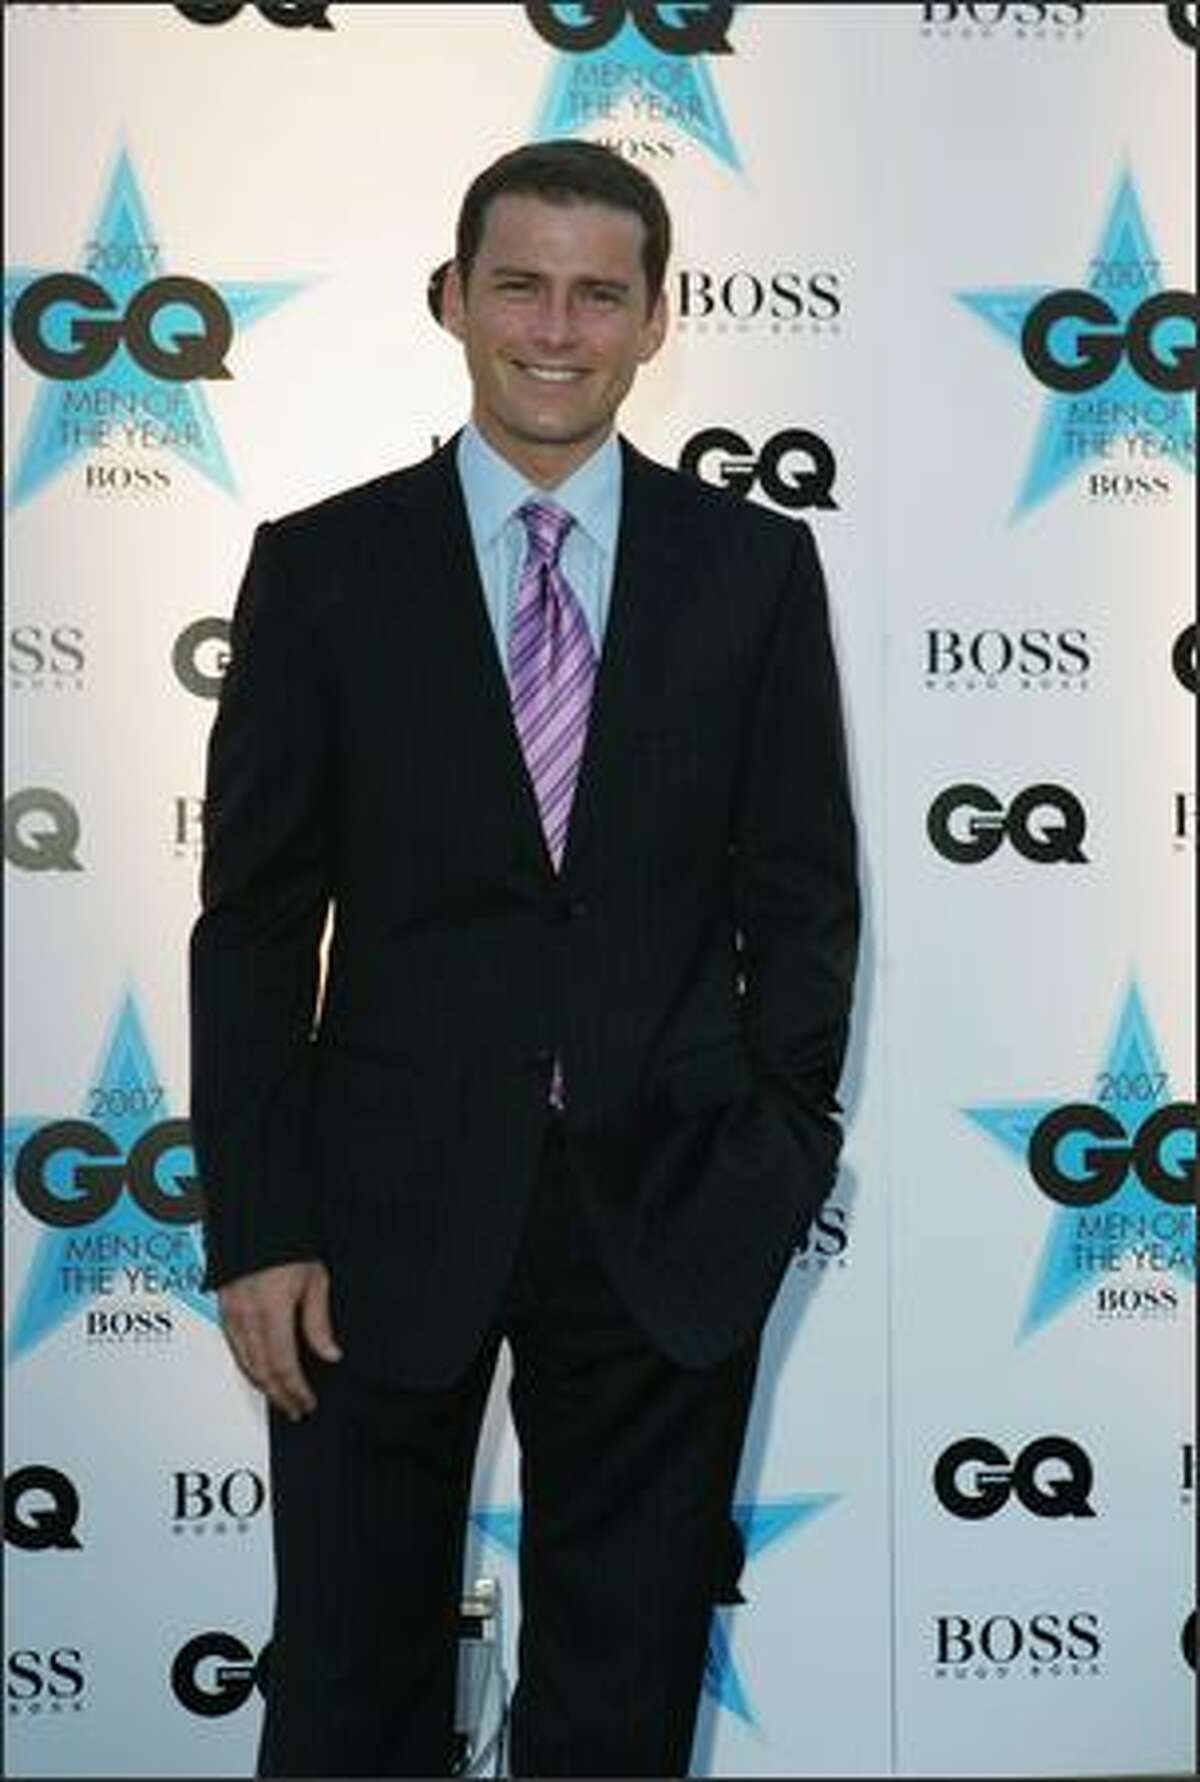 TV Personality Karl Stefanovic attends the GQ Men of the Year Awards at Fox Studios on Tuesday in Sydney, Australia.